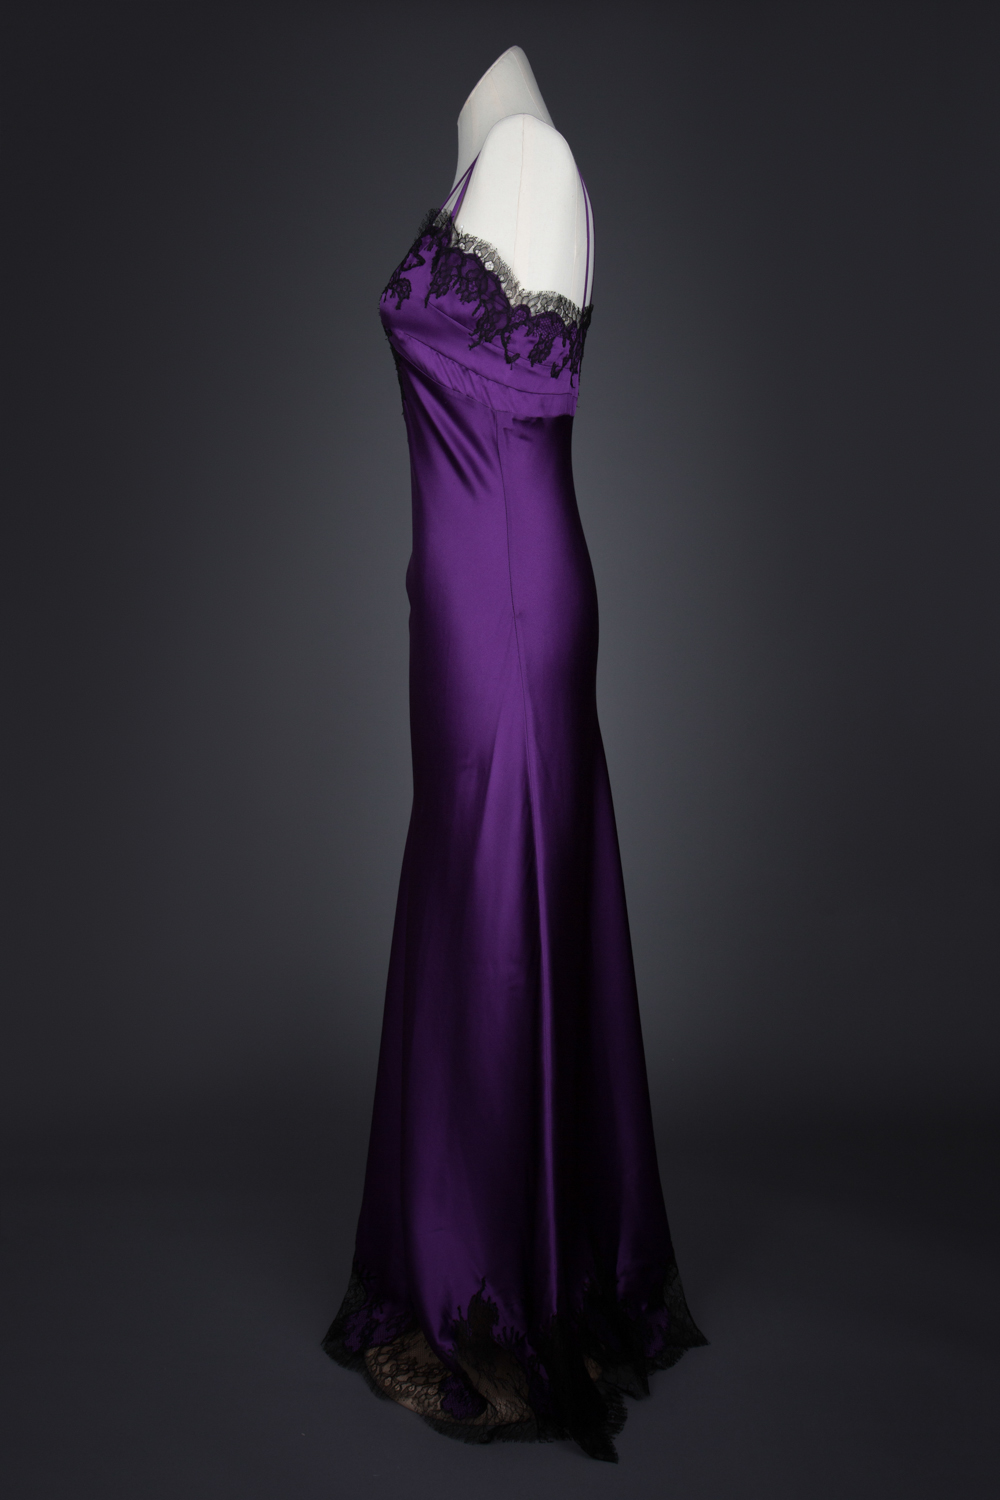 'Amilee' Silk Gown With Lace Appliqué by Layneau, c. 2014, USA. The Underpinnings Museum. Photography by Tigz Rice.